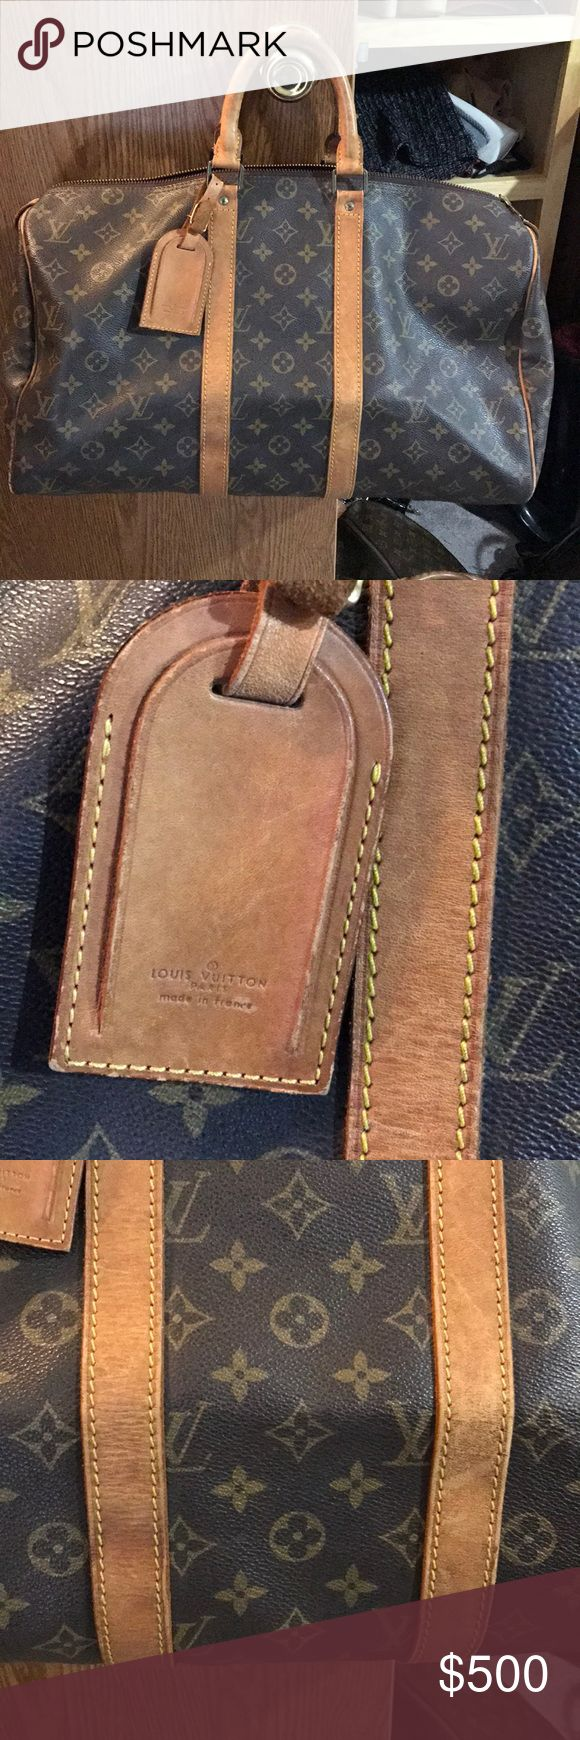 Louis Vuitton Keepall 45 Vintage Keepall 45, comes with dust bag, lock & key, luggage tag.  This is a used vintage bag. Please review all pictures.  Zipper has been replaced with YKK pull.  Light patina for a vintage bag.  Canvas has some rubbing on corners as expected for a vintage bag. Overall good condition. Louis Vuitton Bags Travel Bags